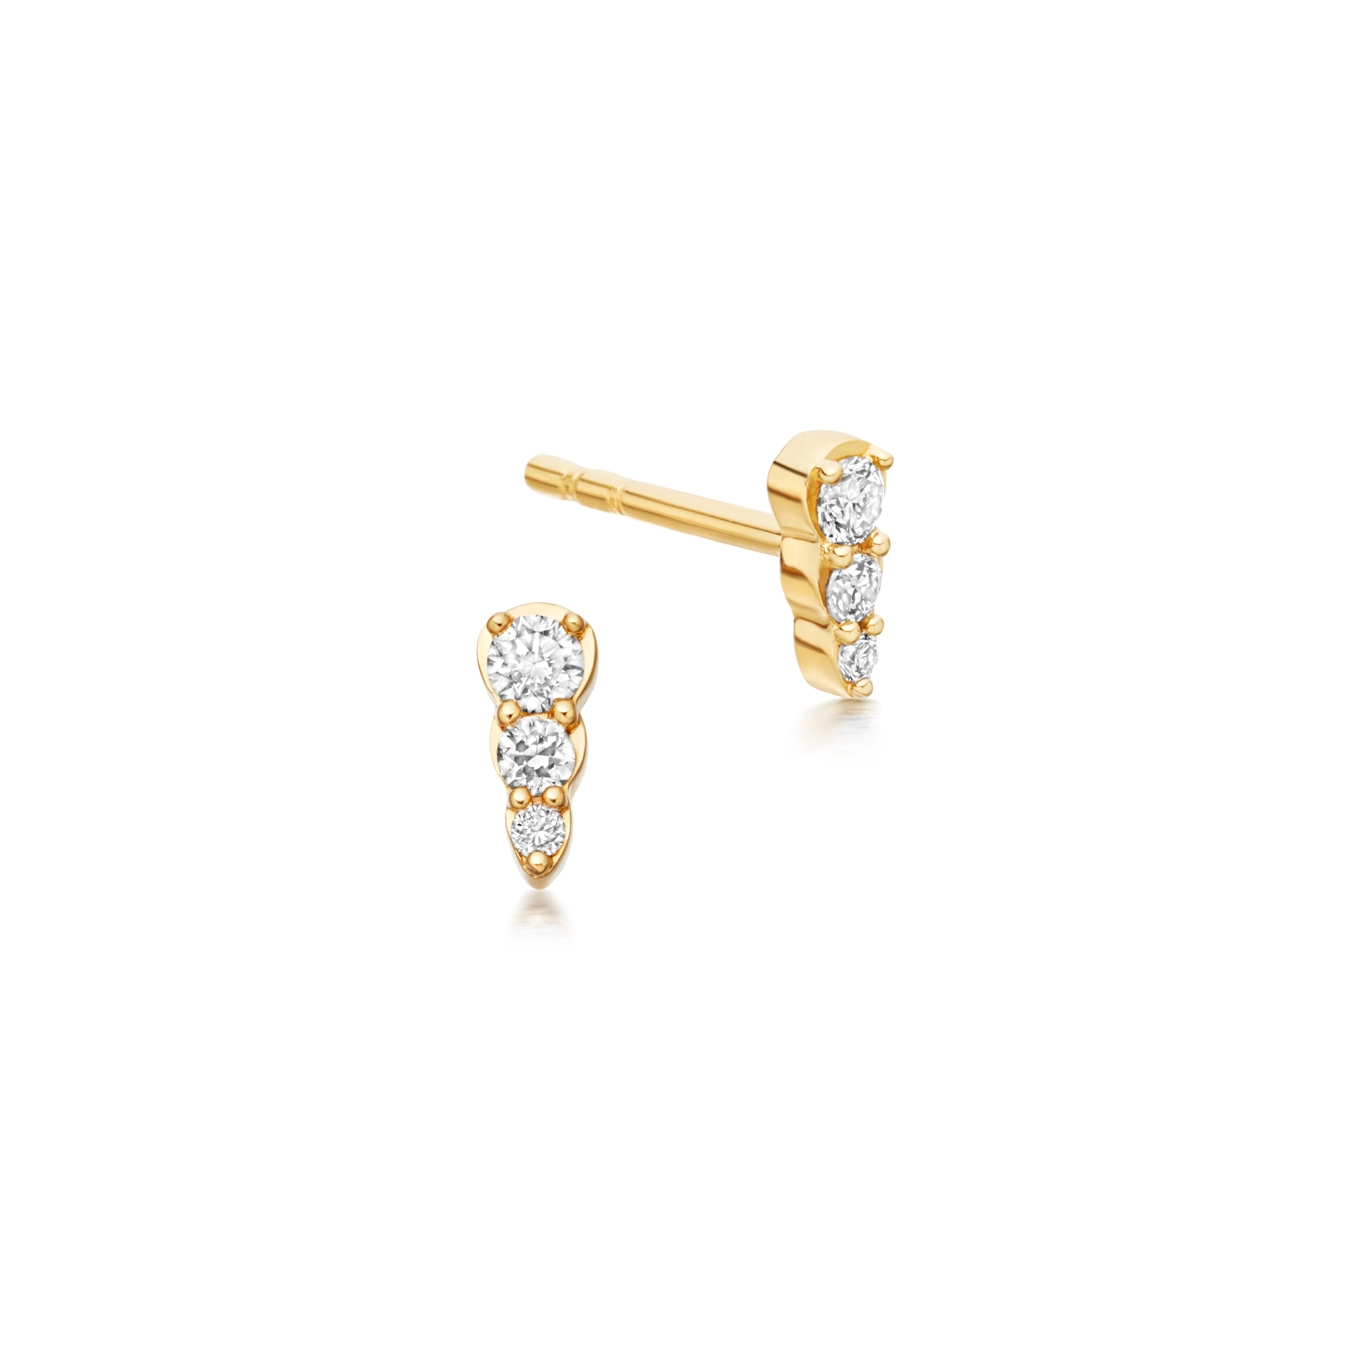 Mini Interstellar Diamond Stud Earrings